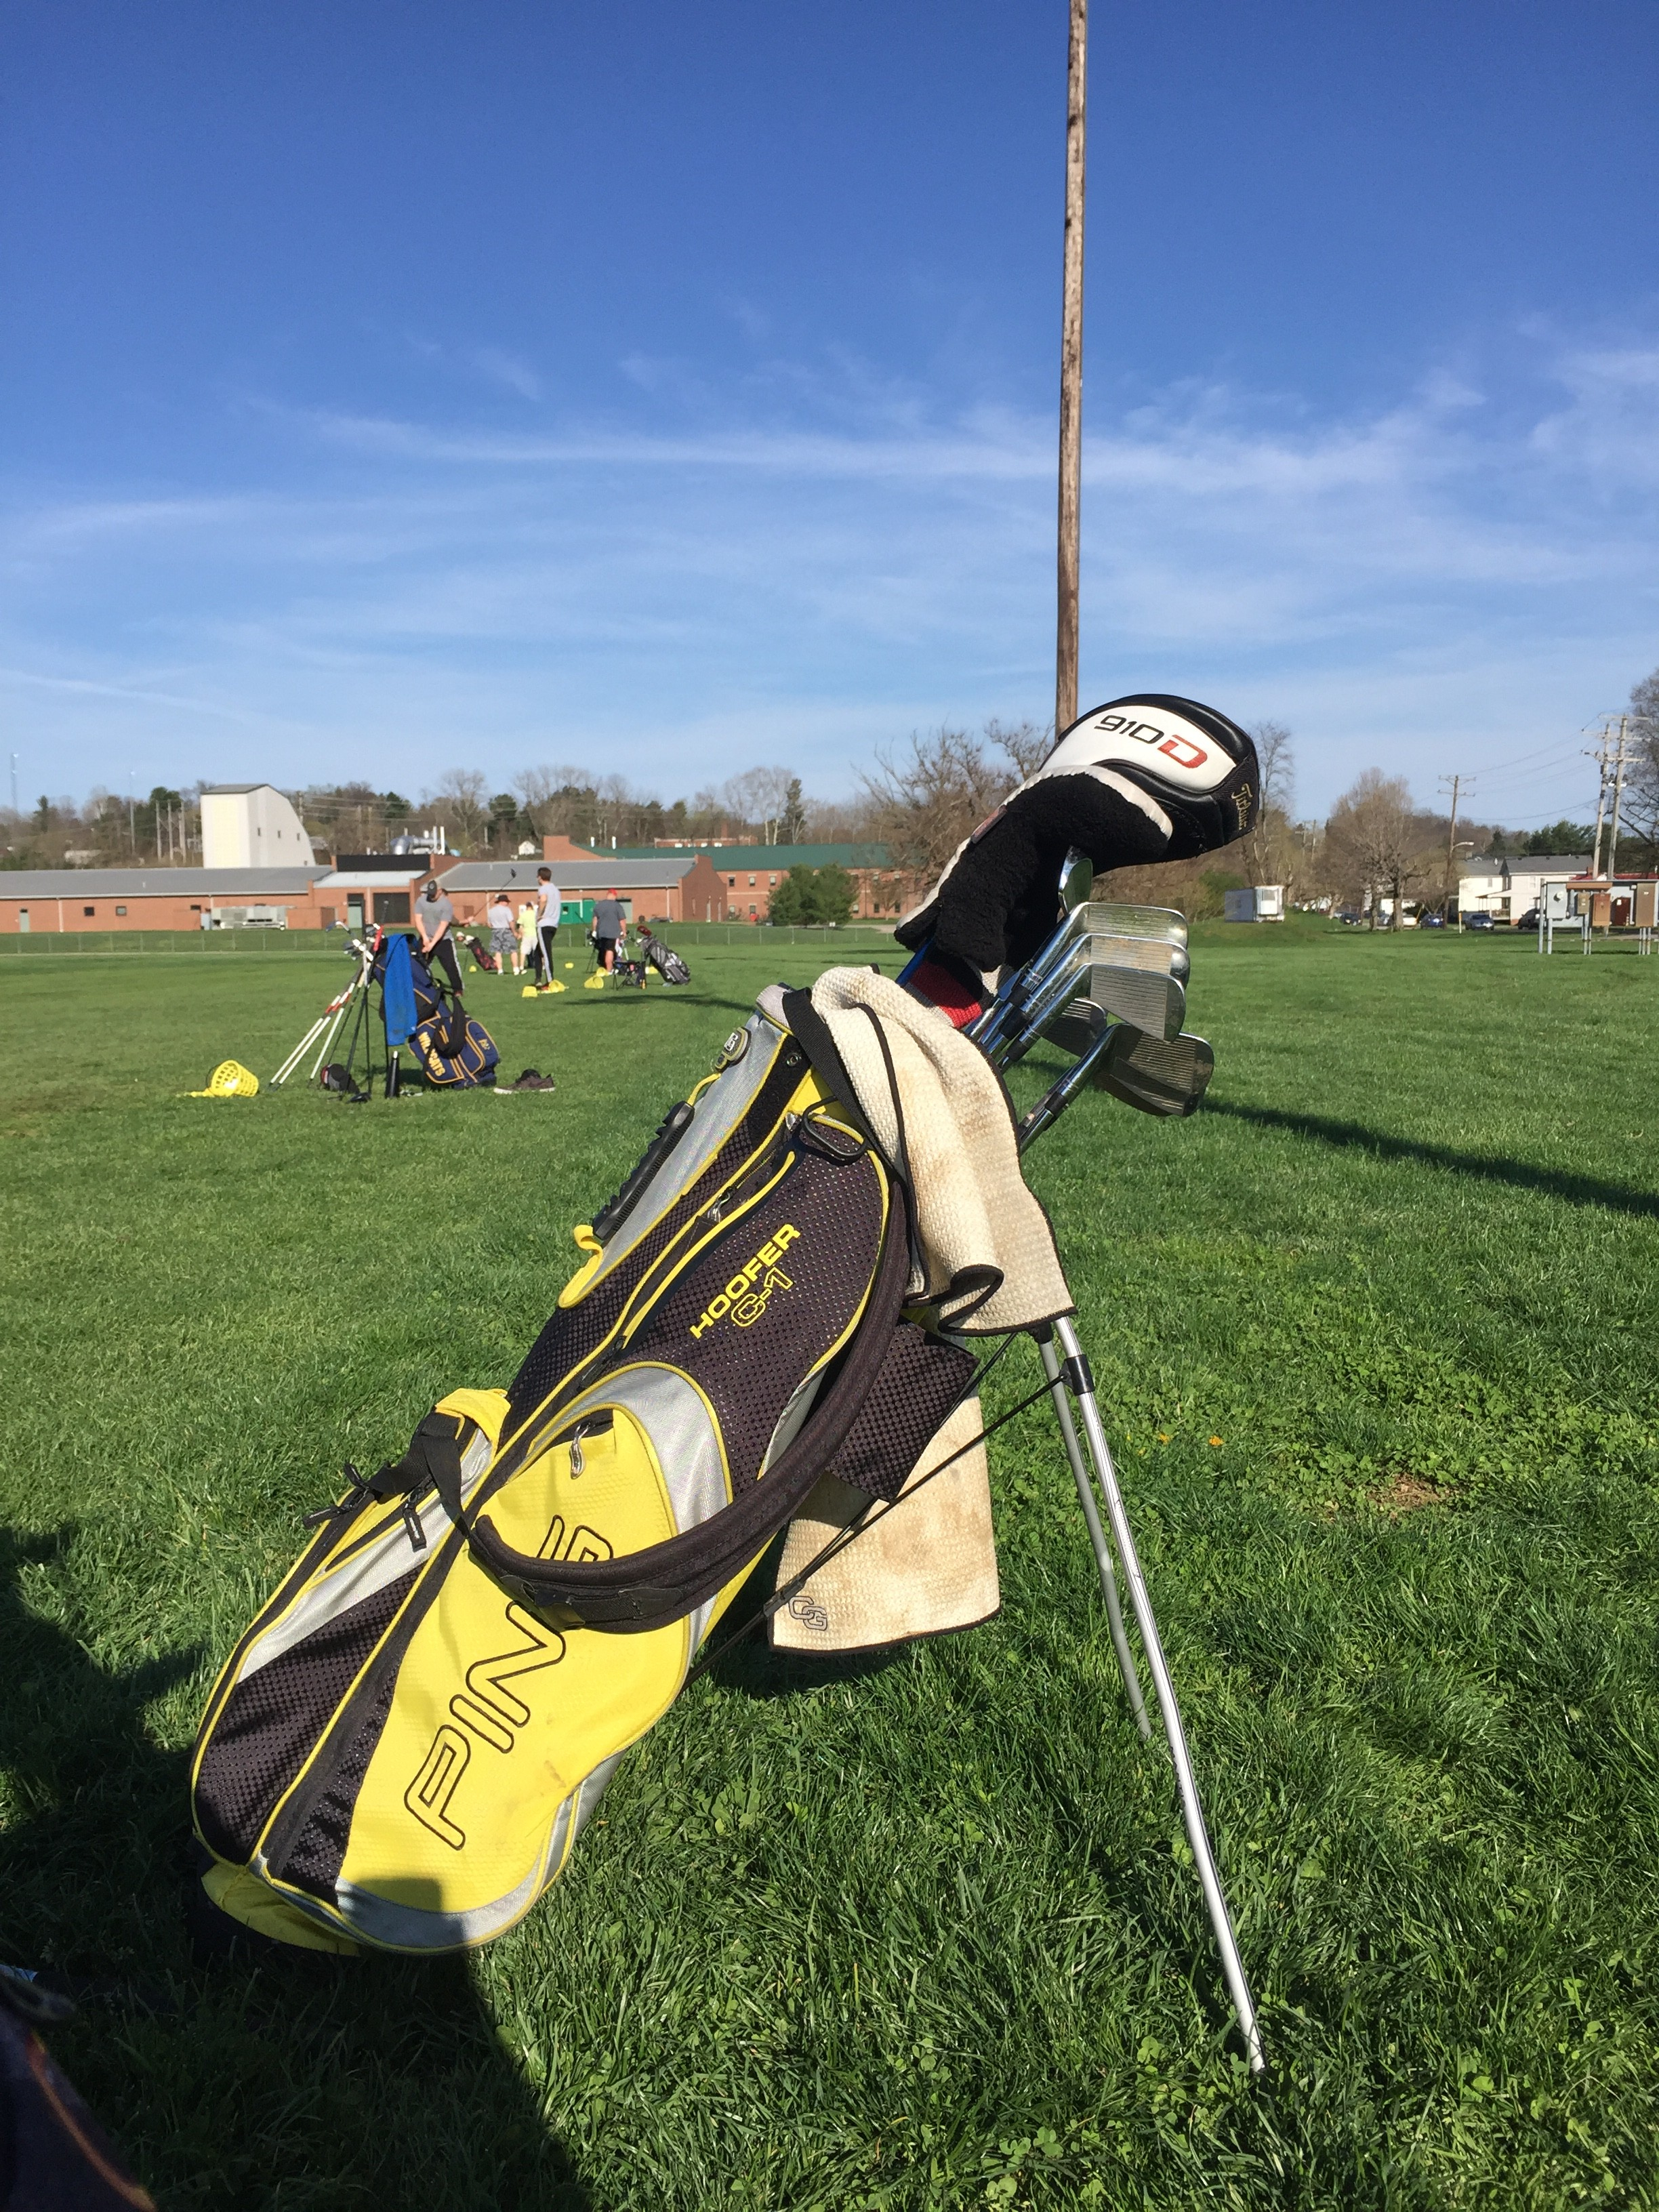 One of the students golf bags.